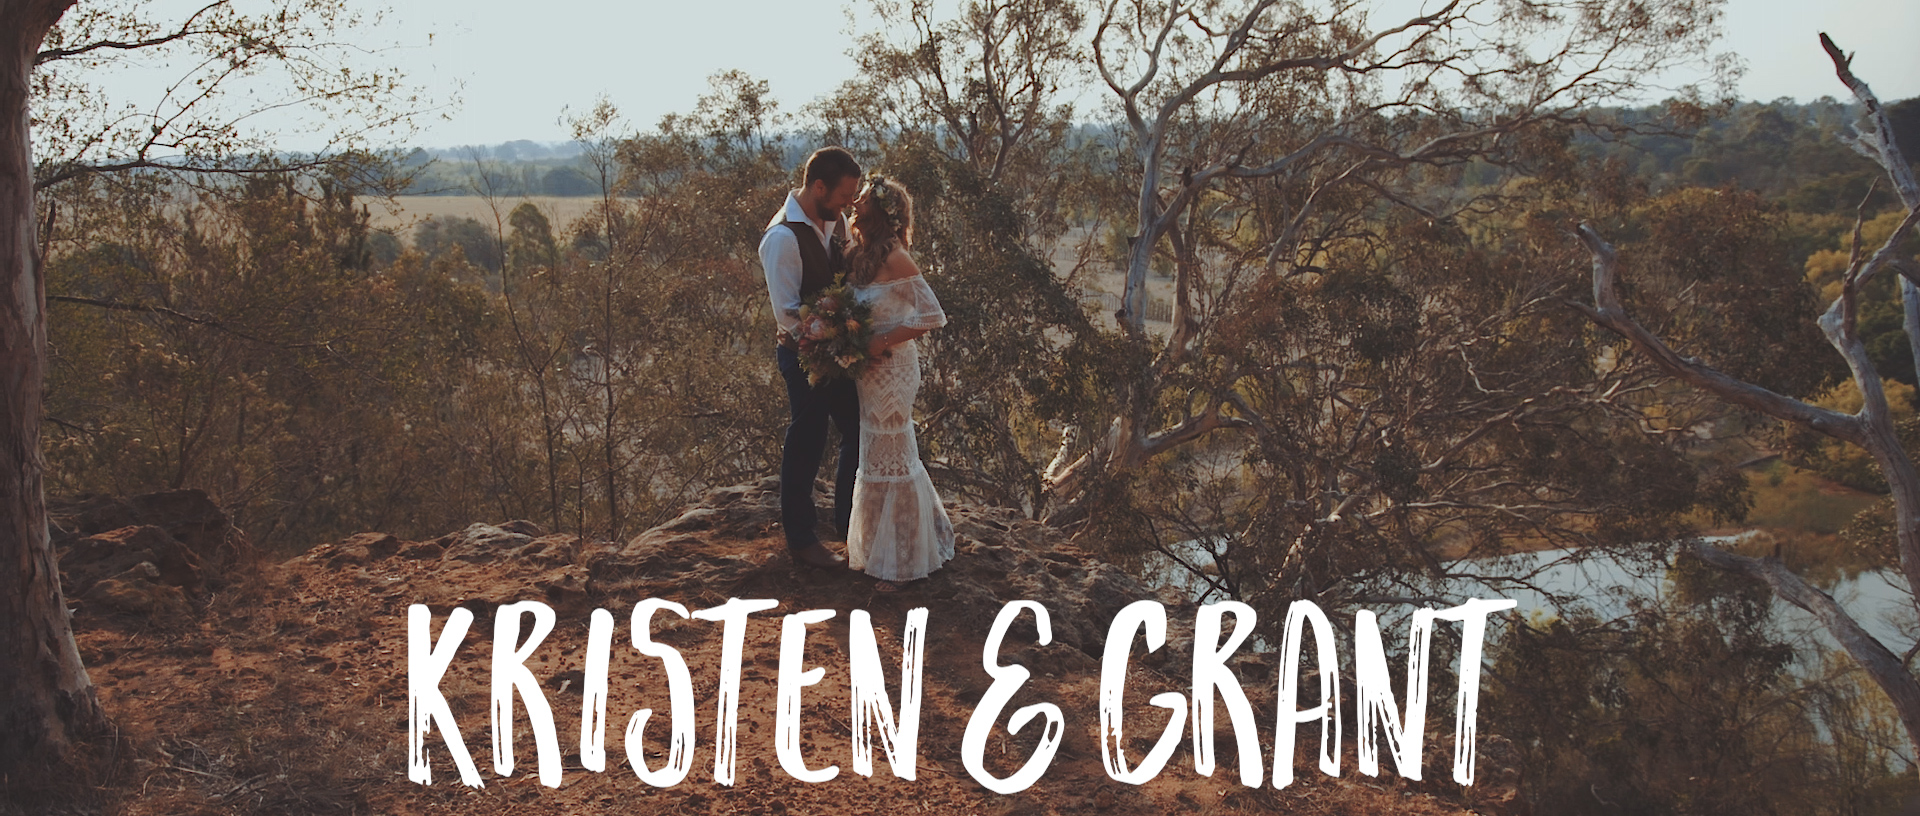 Kristen + Grant | Stratford, Australia | The Brides Family Farm